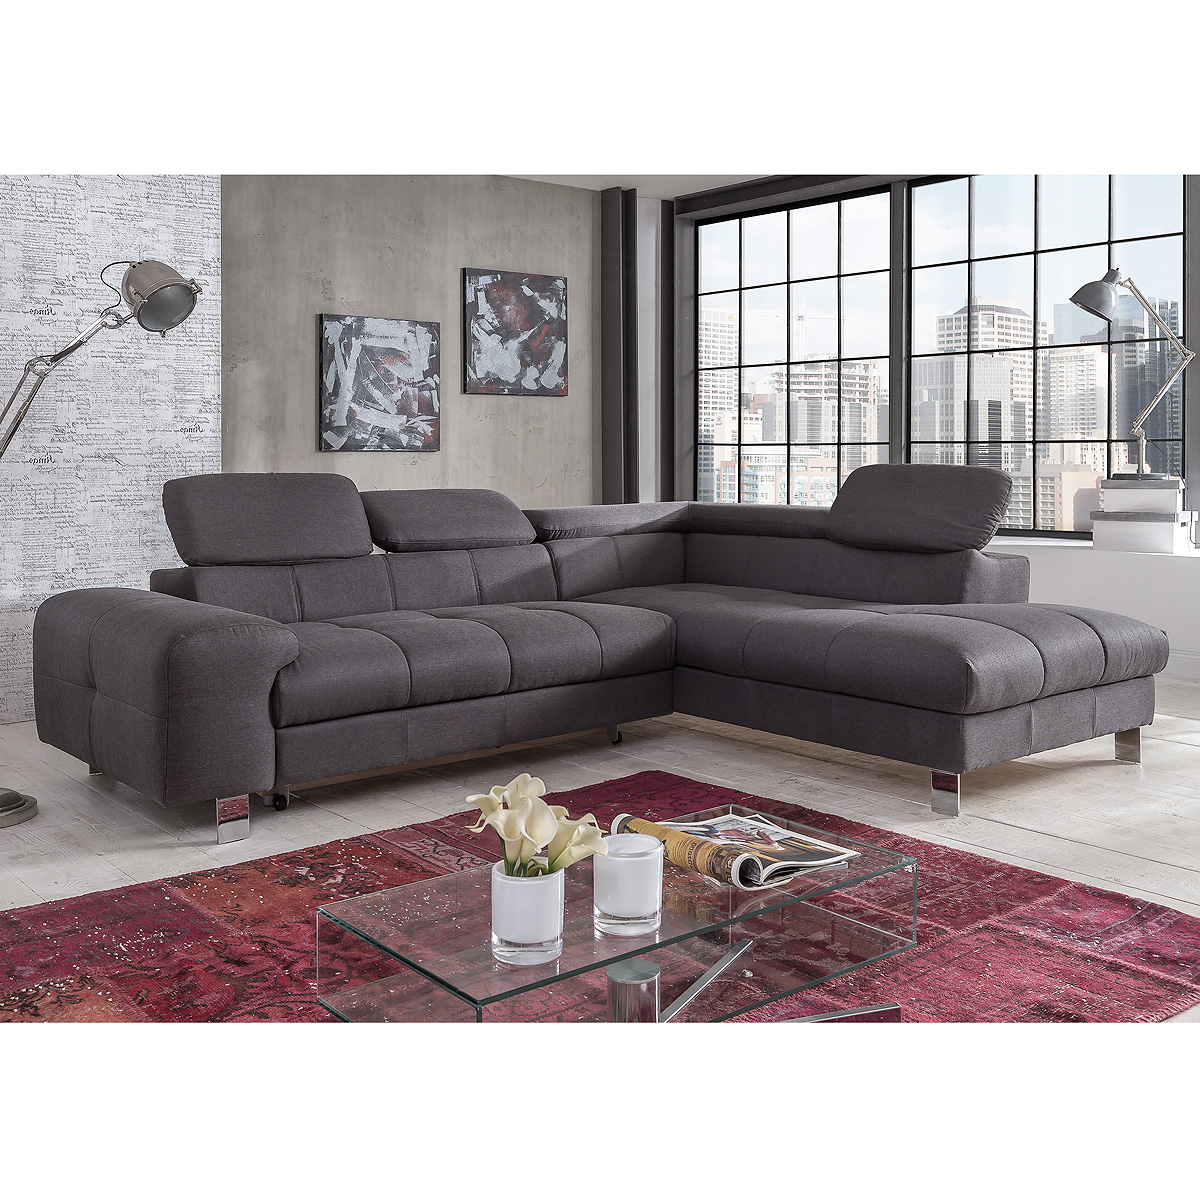 ecksofa presidente sofa wohnlandschaft polsterecke anthrazit funktionsauswahl ebay. Black Bedroom Furniture Sets. Home Design Ideas